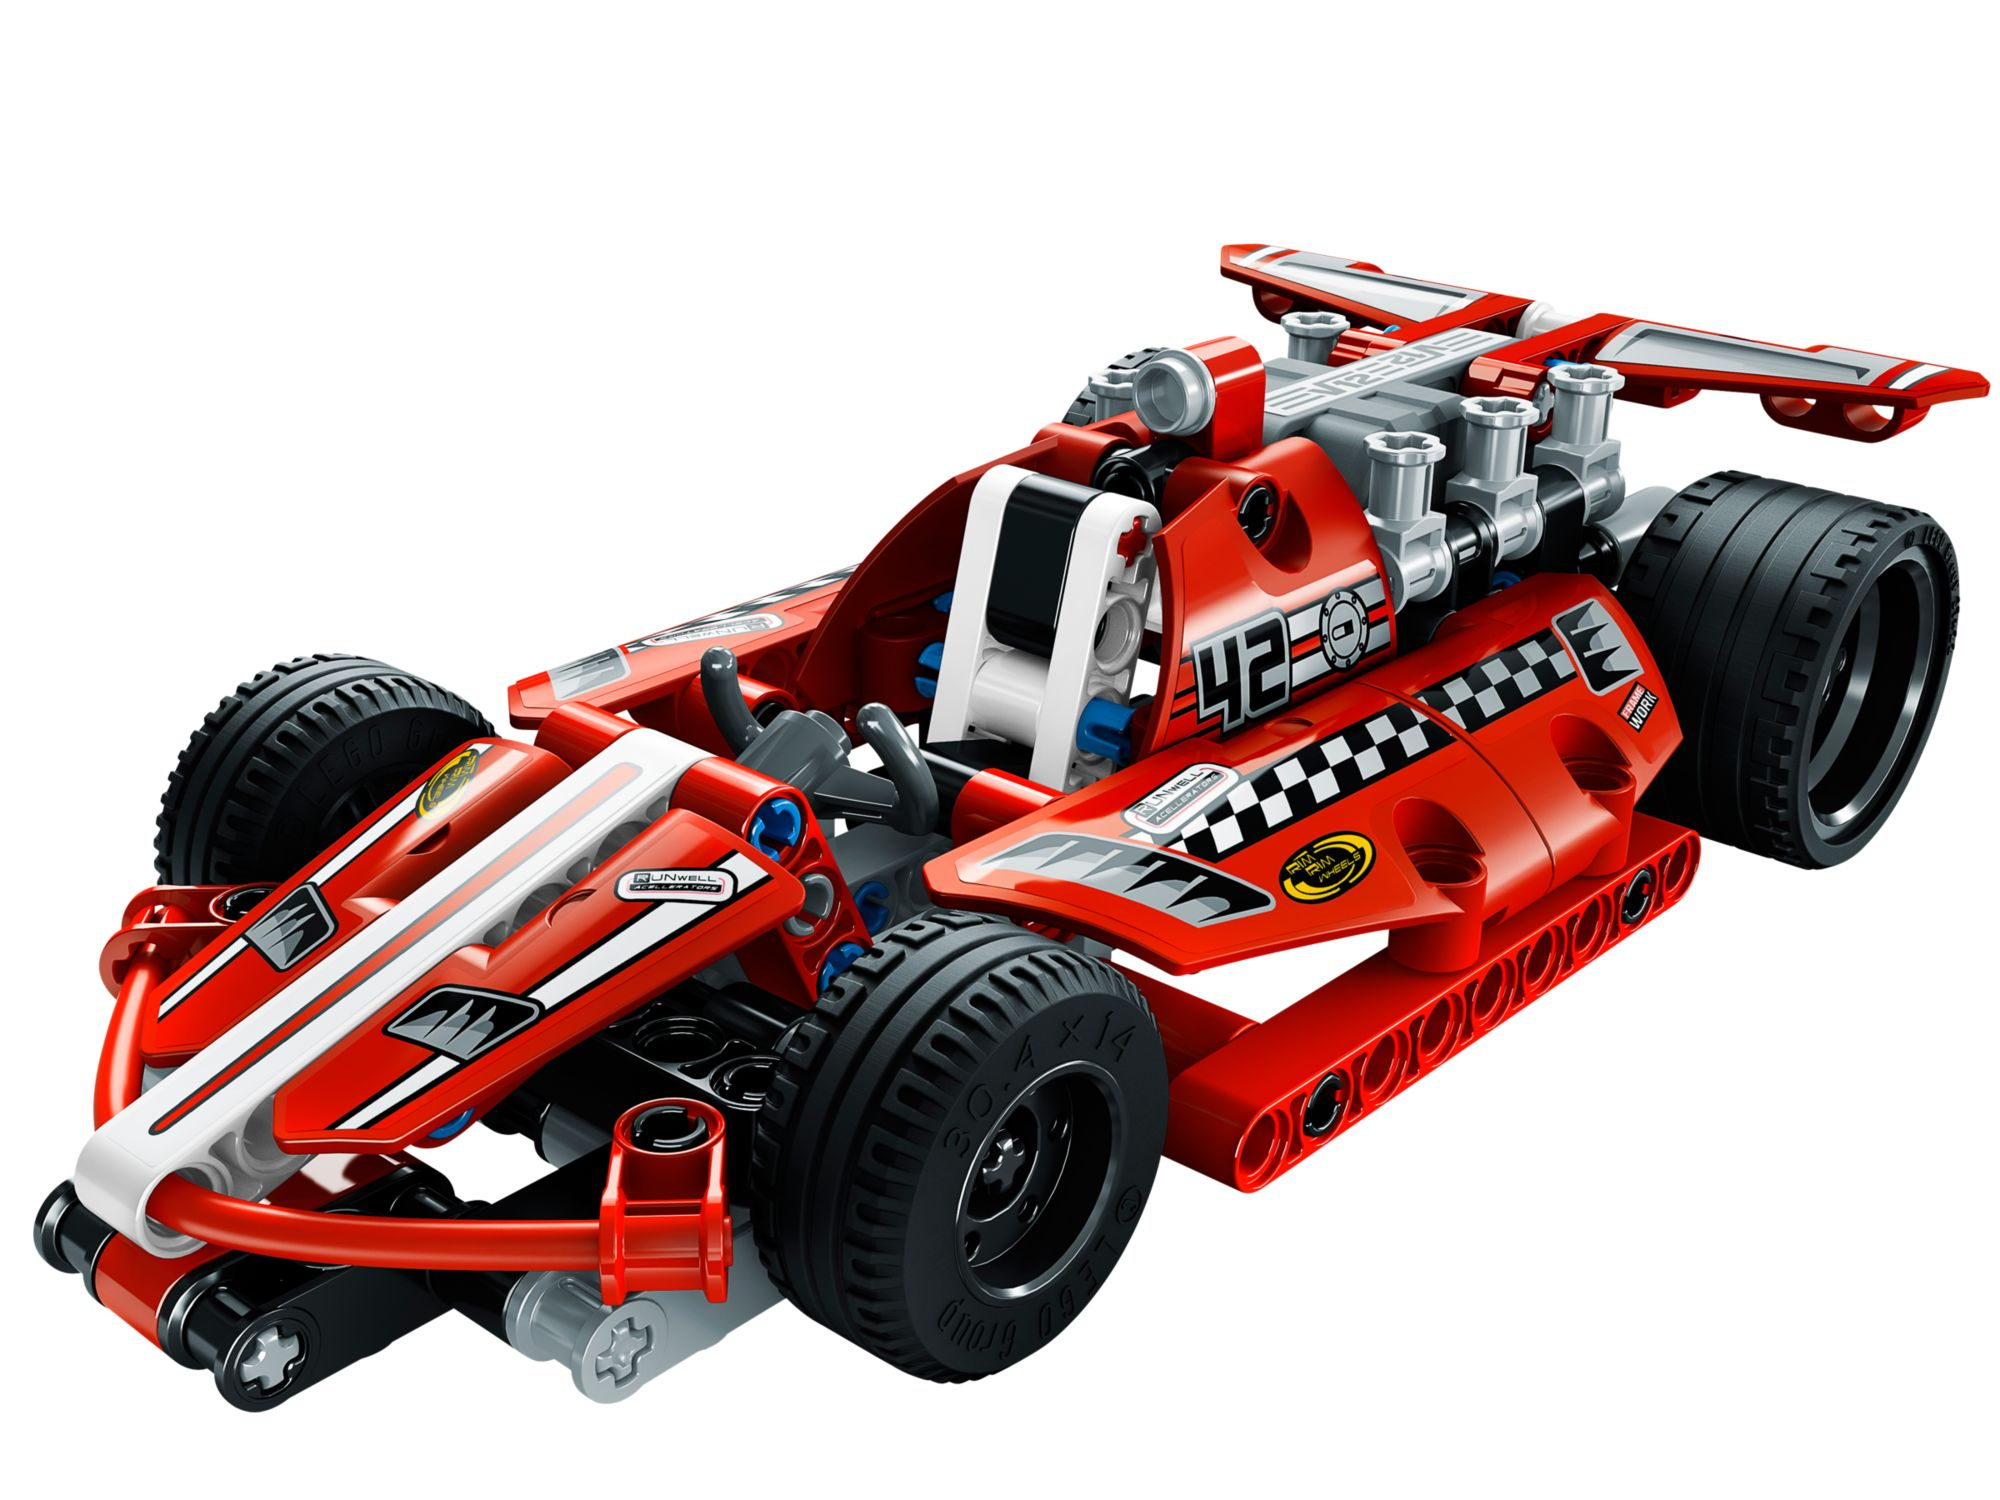 lego 42011 lego technic race car toymania lego online shop. Black Bedroom Furniture Sets. Home Design Ideas